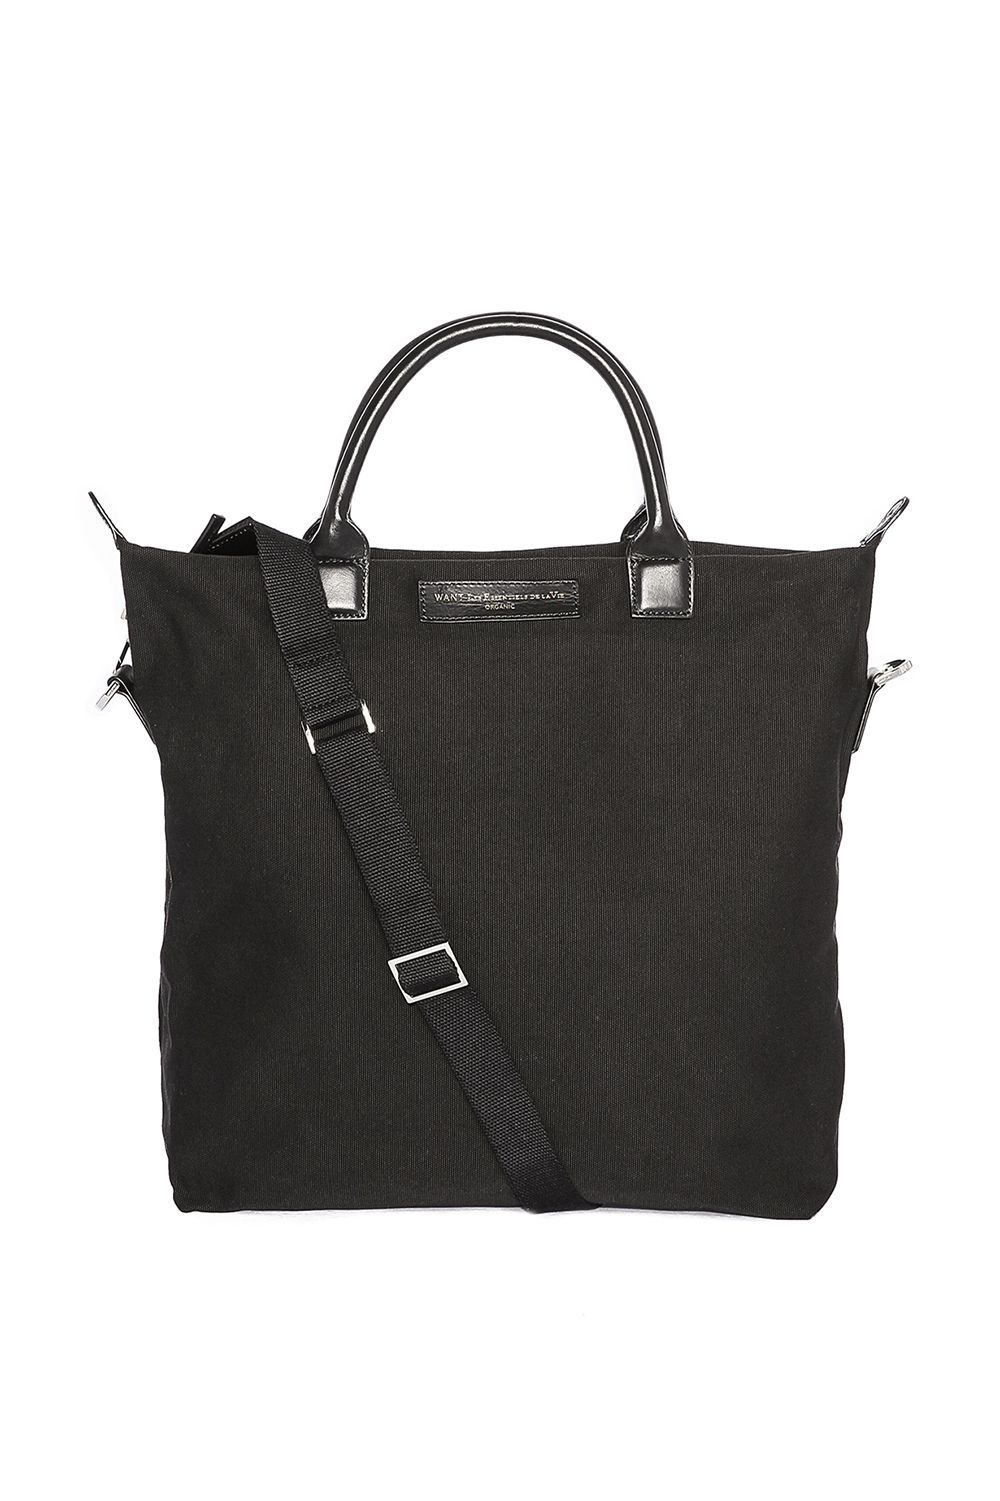 Canvas, But Make It Professional WANT Les Essentiels Shopbop $250.00 SHOP IT Canvas isn't only made for the weekends. This shopper tote with leather handles is durable enough to wear everyday without feeling like you're wearing it out.